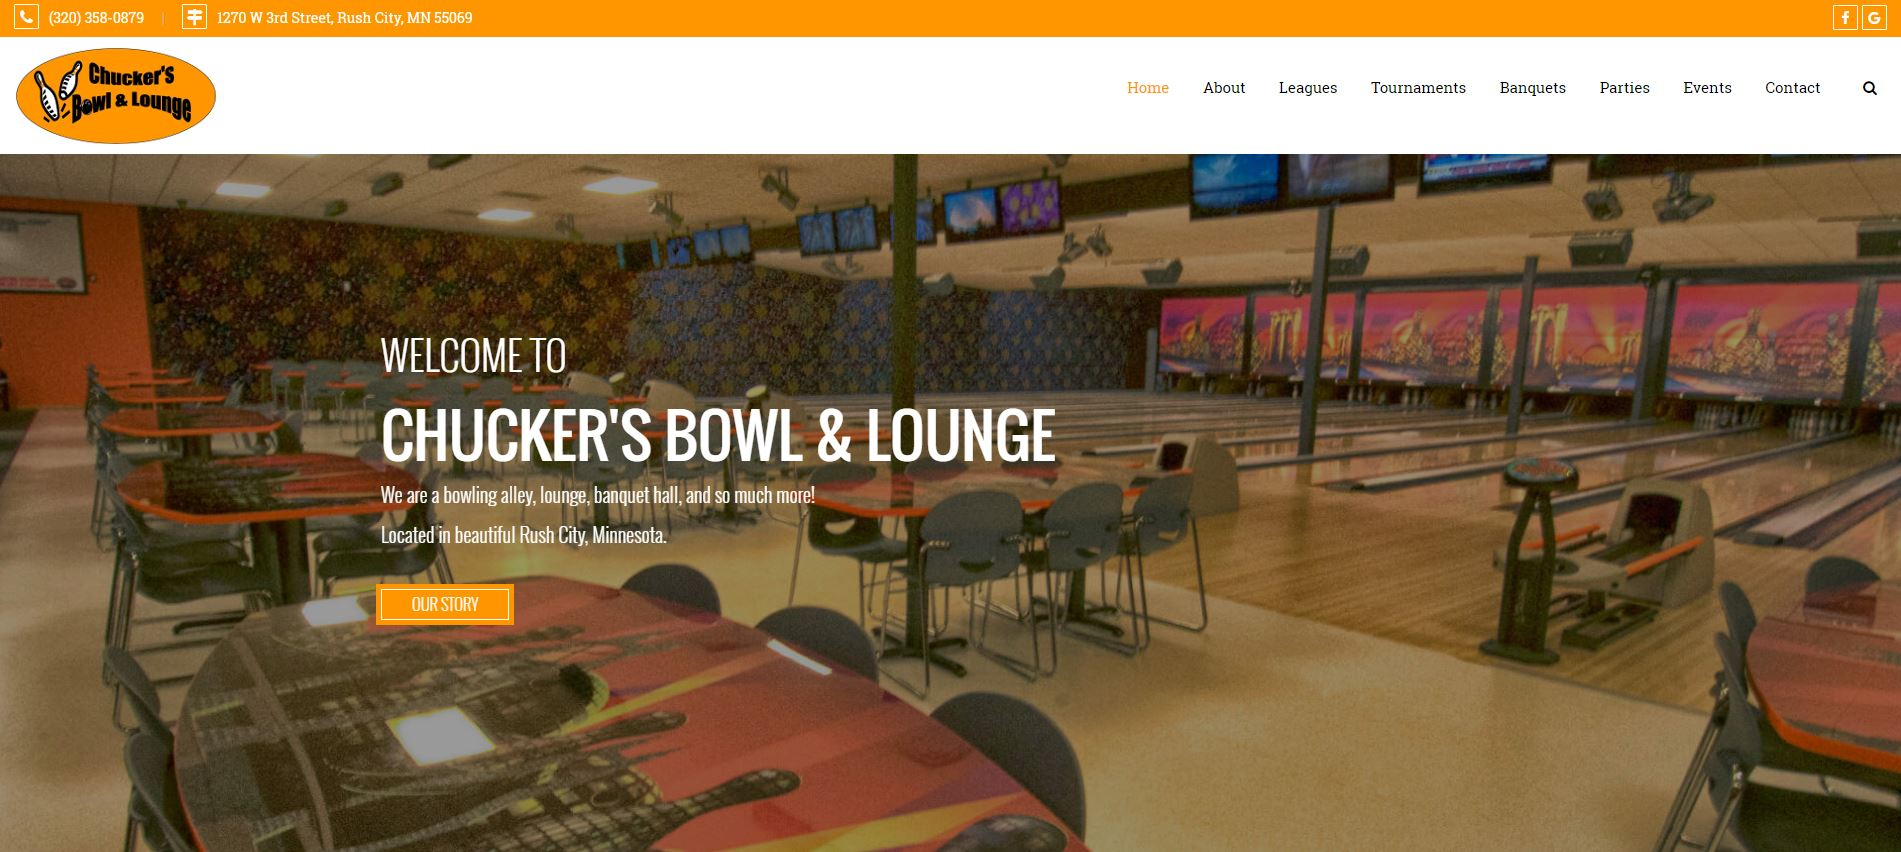 Bowling Entertainment Website Design cbl1